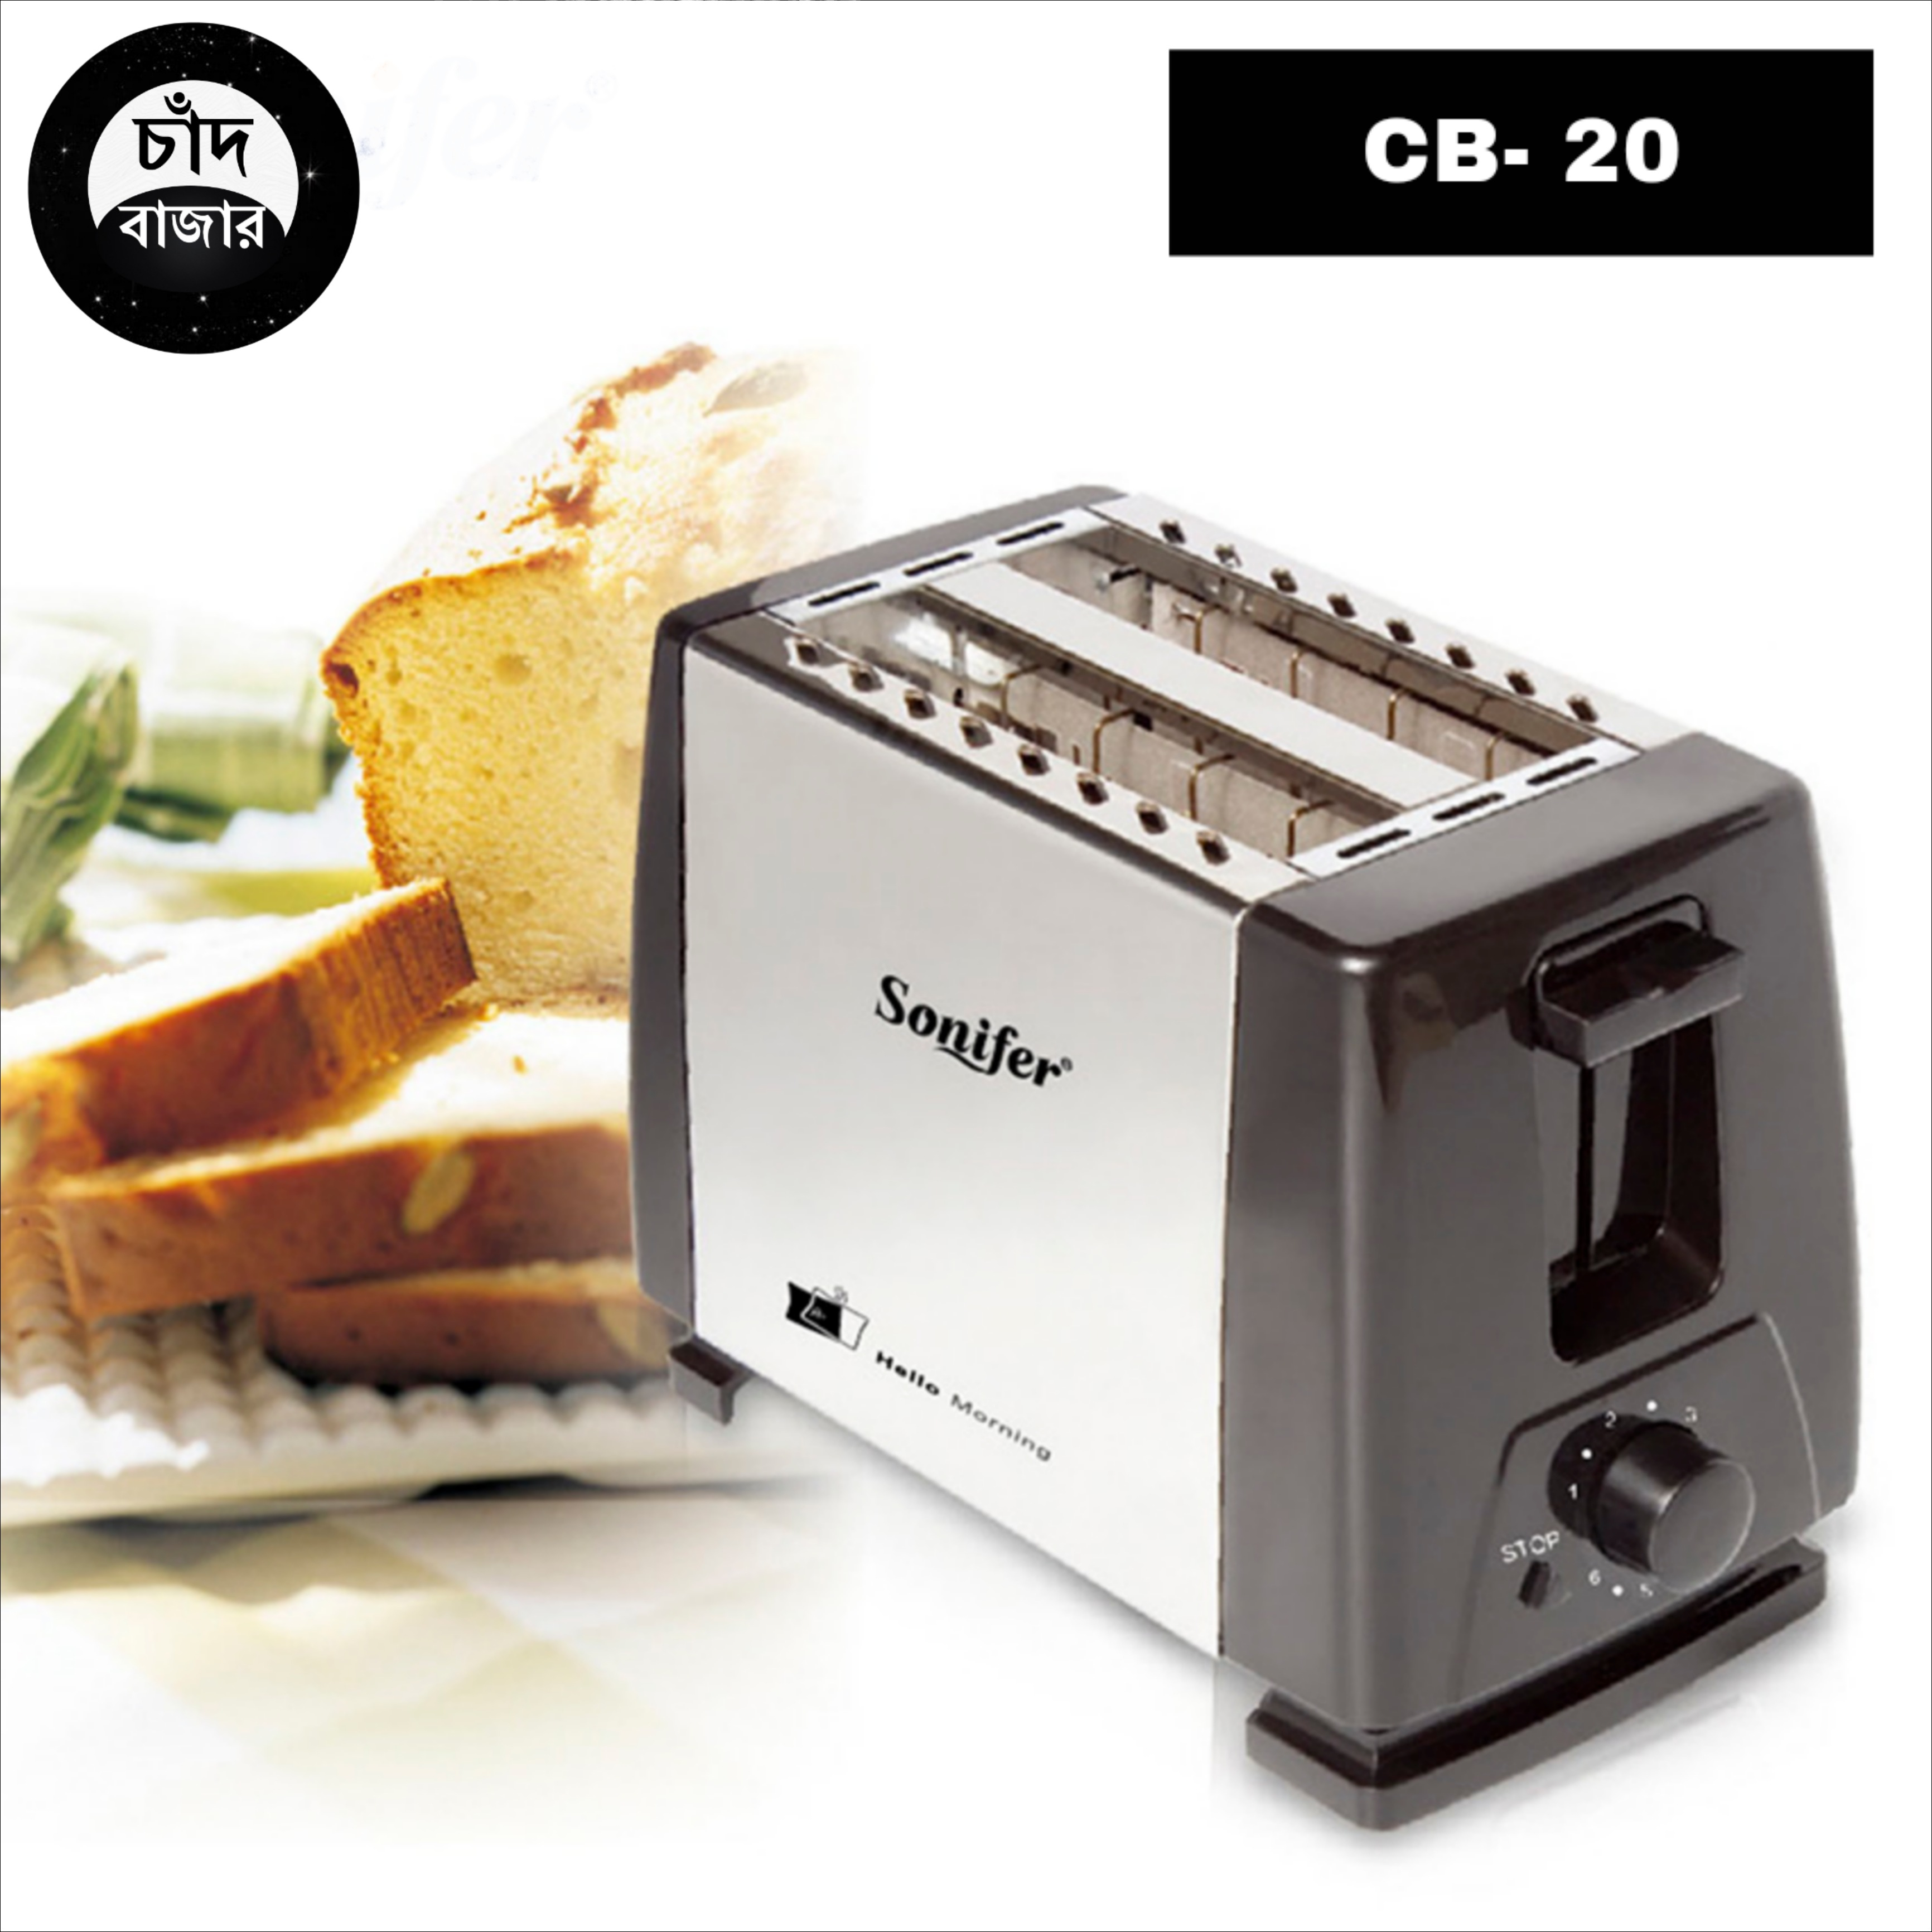 SF-6007 Sonifer 600-700 W 2 Slice Toaster with Warming Rack...